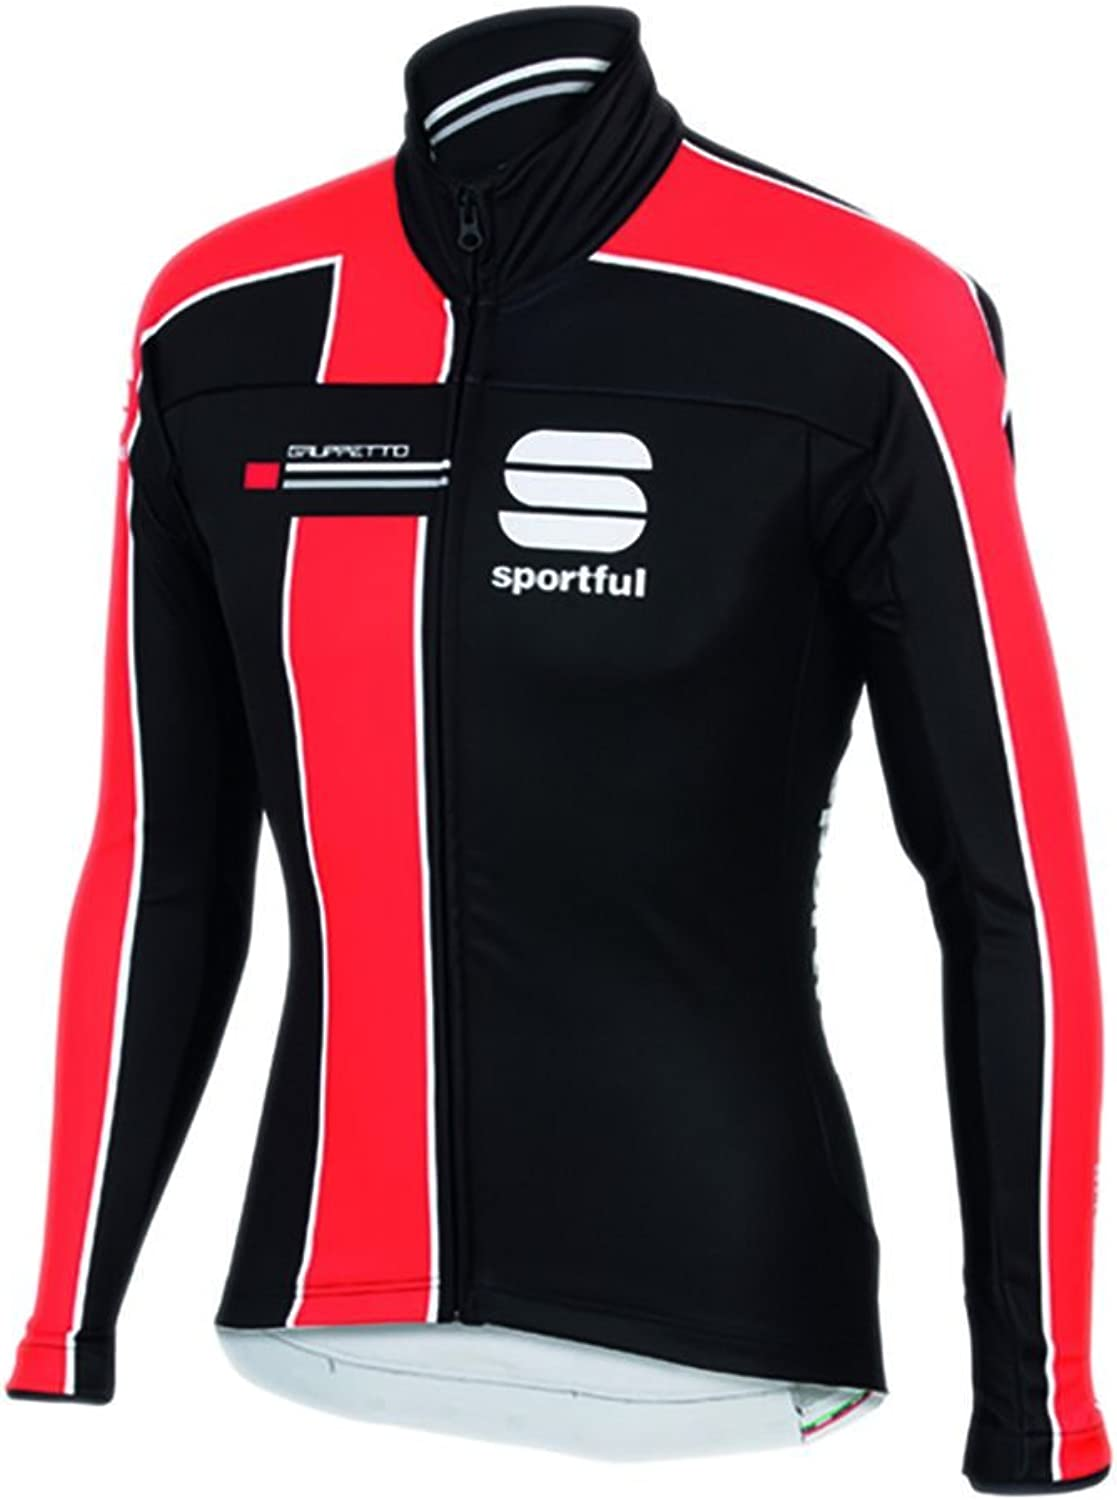 Sportful Jacket Gruppetto Partial WS Windstopper Jacket-Fire Red Black